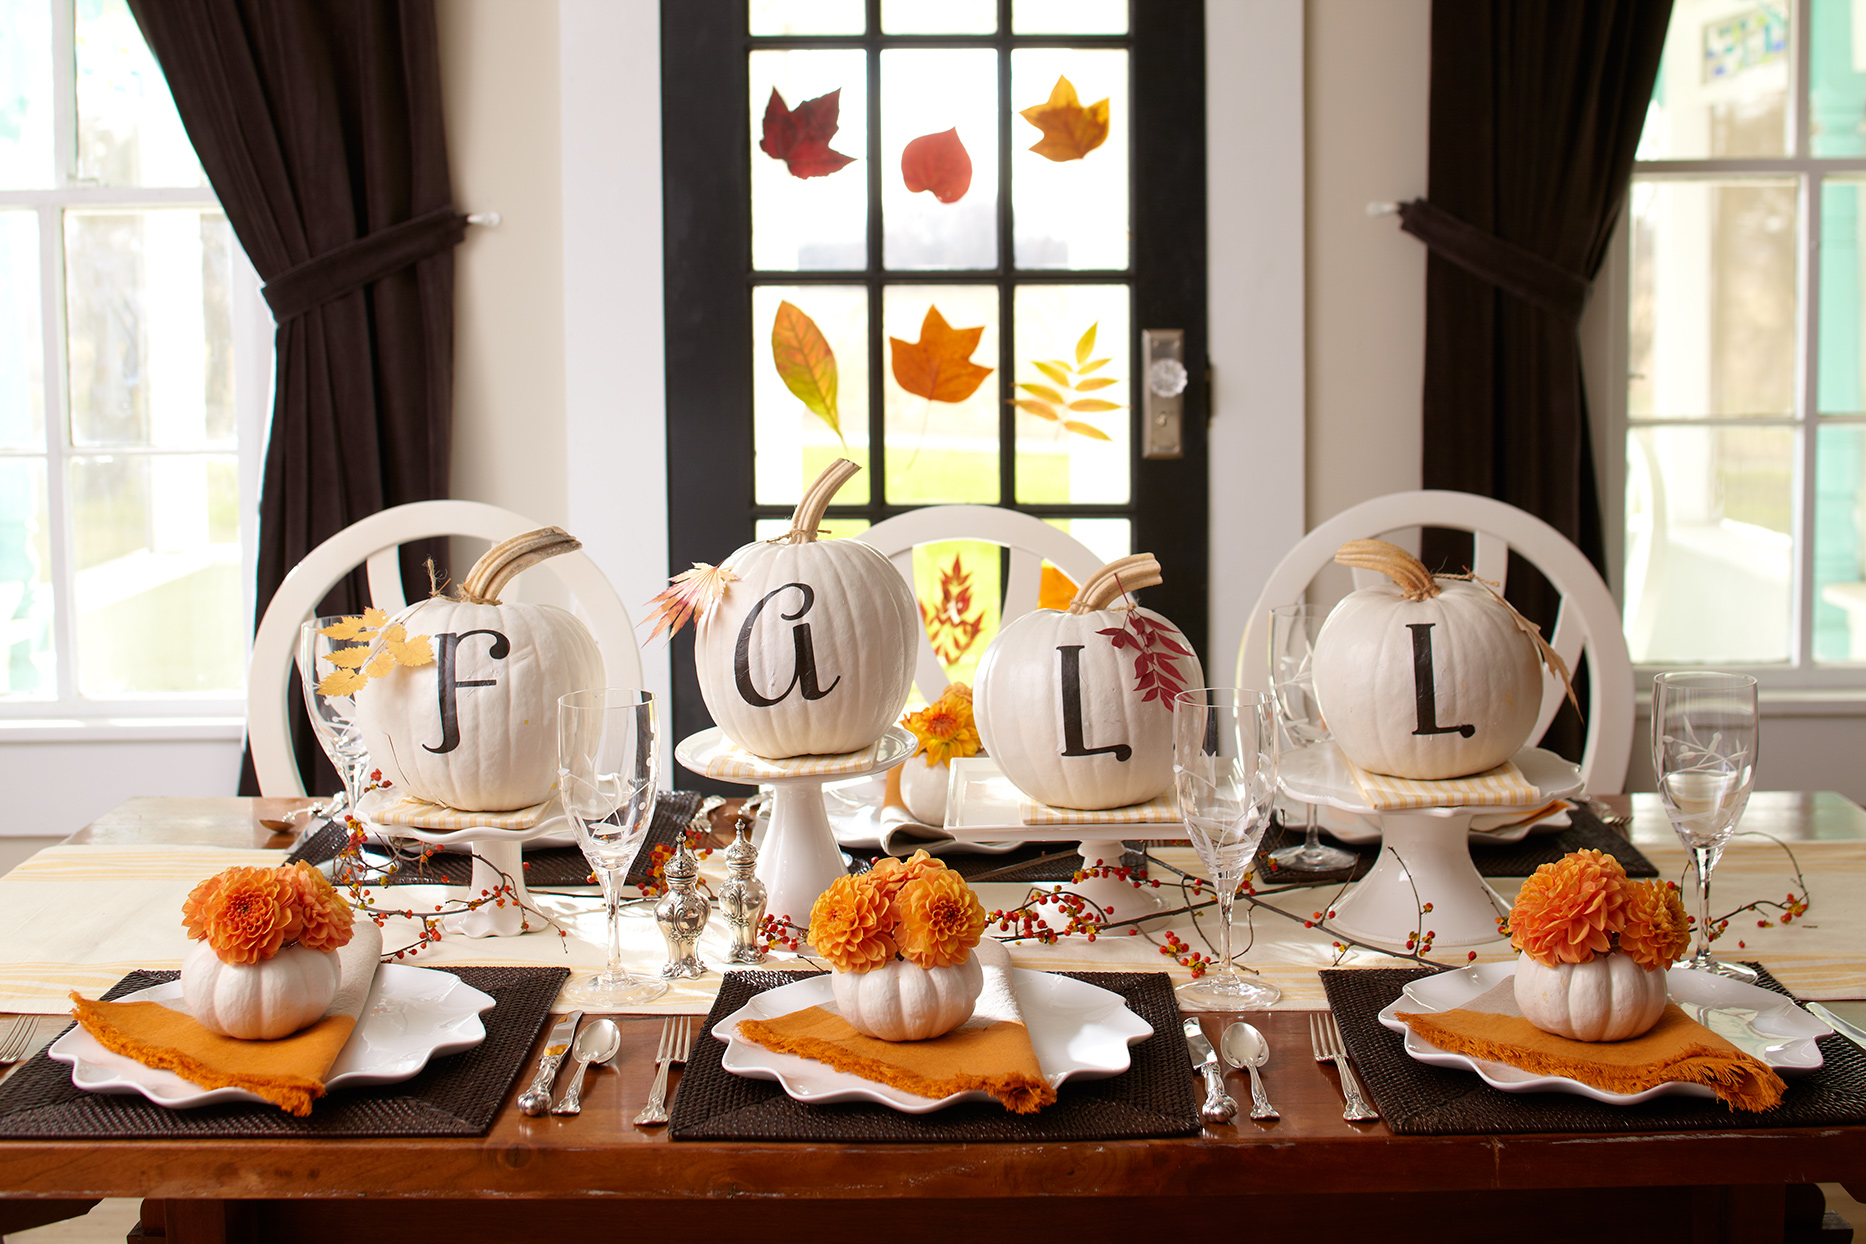 white-painted pumpkins with lettering spelling fall